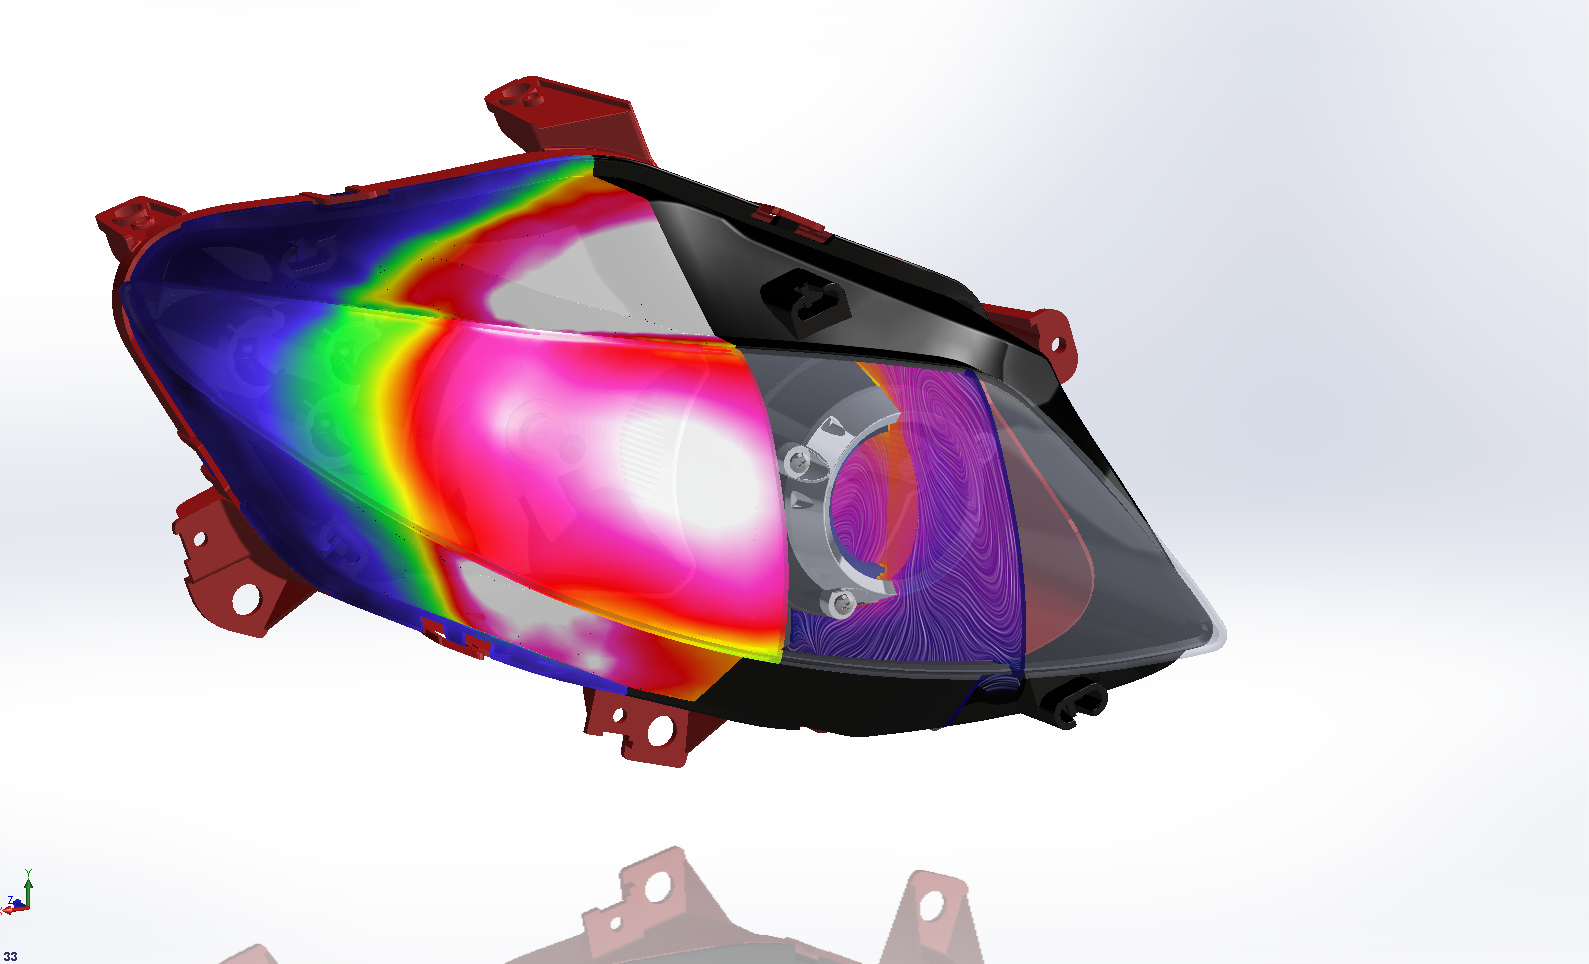 Led Car Headlight Design Can Benefit From Thermal